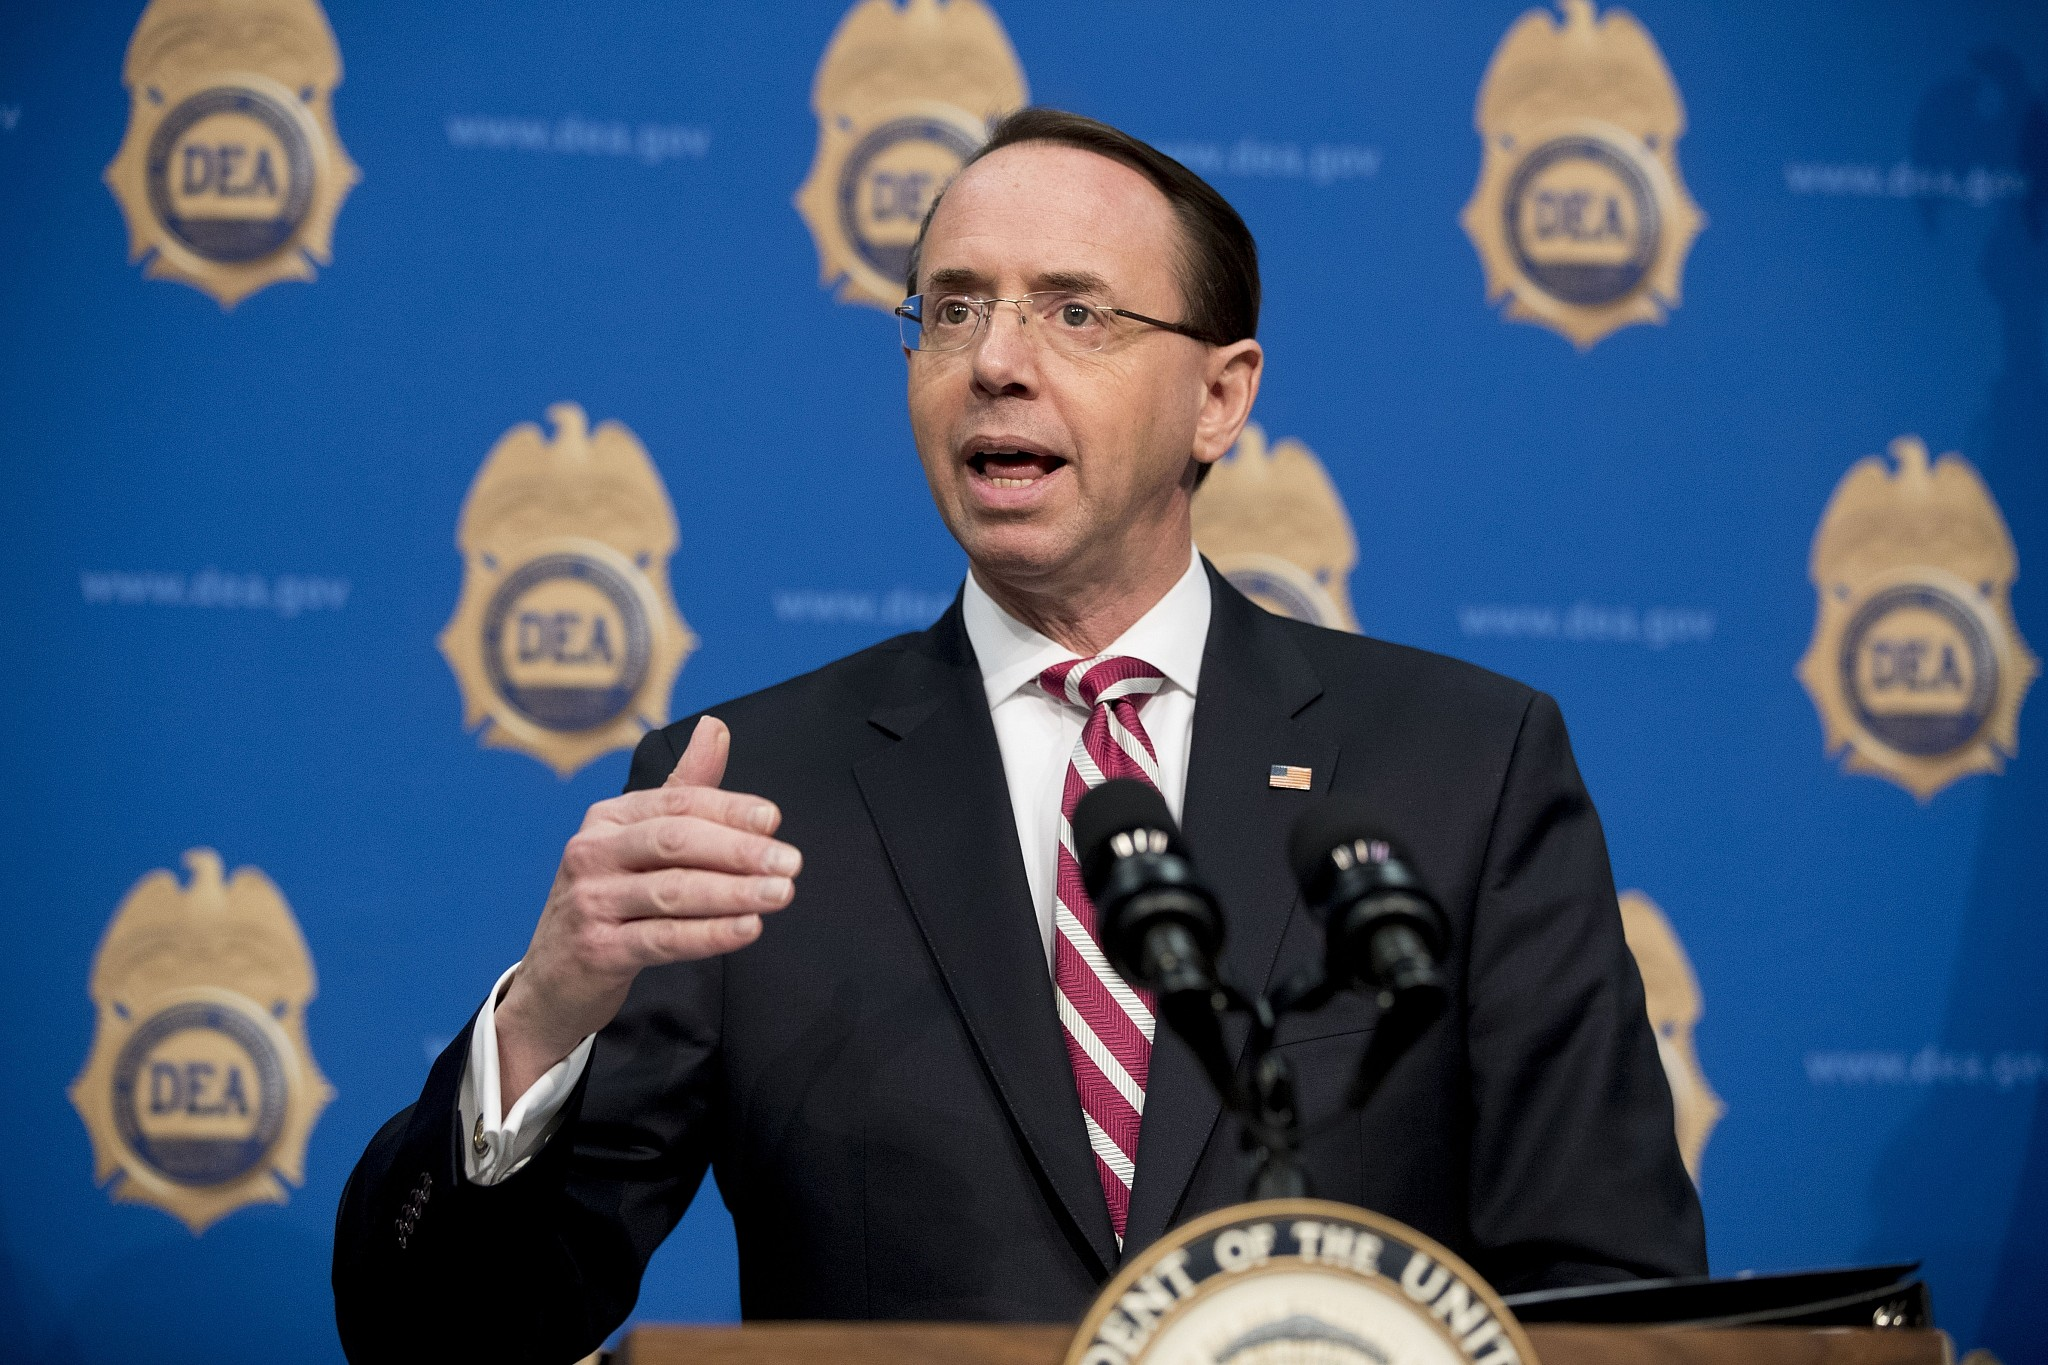 New attorney general in hot seat as Mueller report nears